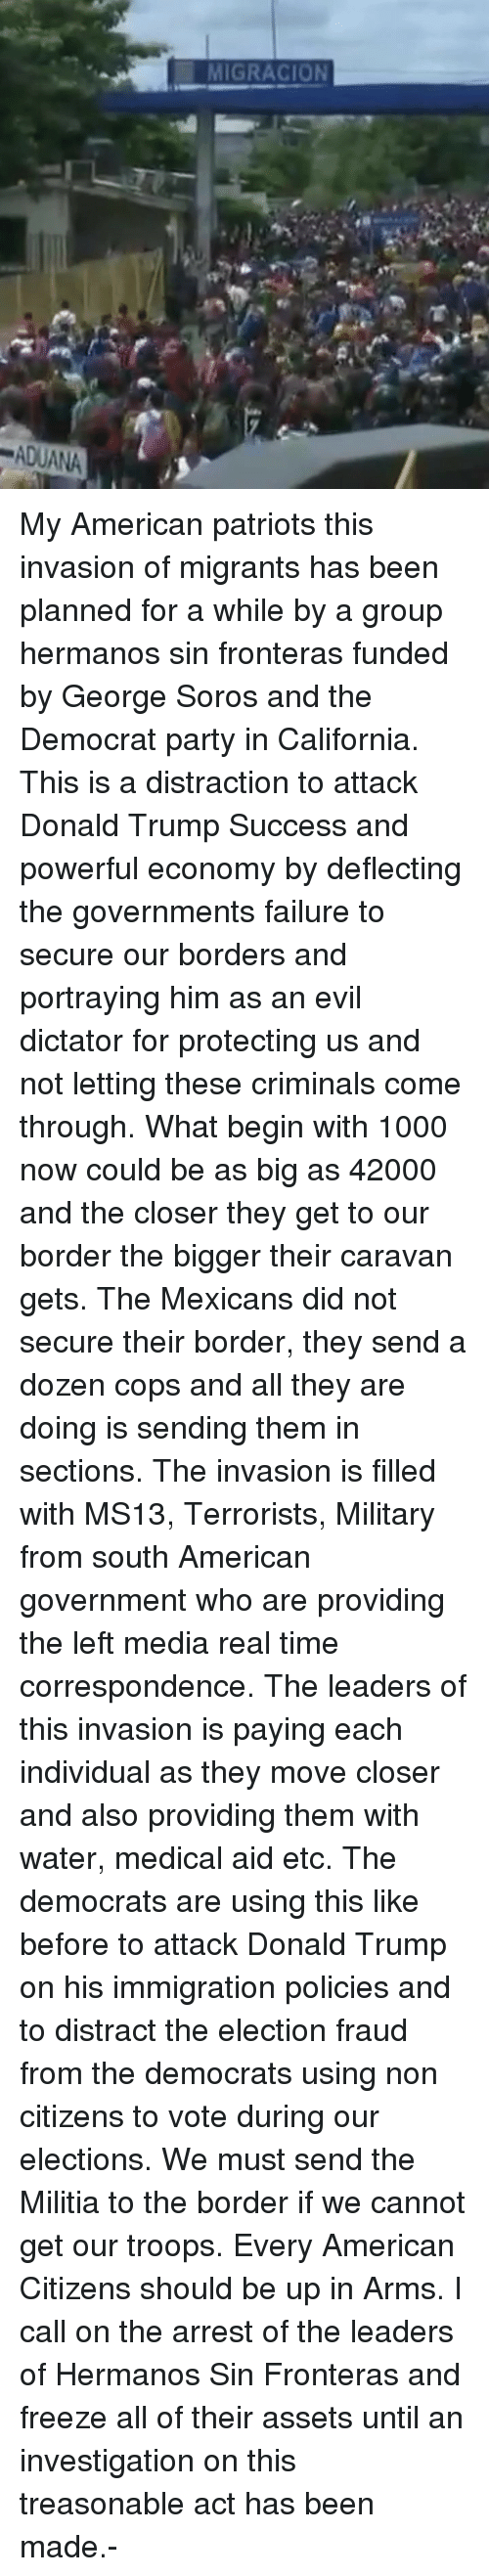 Militia: MIGRACION  ADUANA My American patriots this invasion of migrants has been planned for a while by a group hermanos sin fronteras funded by George Soros and the Democrat party in California. This is a distraction to attack Donald Trump Success and powerful economy by deflecting the governments failure to secure our borders and portraying him as an evil dictator for protecting us and not letting these criminals come through. What begin with 1000 now could be as big as 42000 and the closer they get to our border the bigger their caravan gets. The Mexicans did not secure their border, they send a dozen cops and all they are doing is sending them in sections. The invasion is filled with MS13, Terrorists, Military from south American government who are providing the left media real time correspondence. The leaders of this invasion is paying each individual as they move closer and also providing them with water, medical aid etc. The democrats are using this like before to attack Donald Trump on his immigration policies and to distract the election fraud from the democrats using non citizens to vote during our elections. We must send the Militia to the border if we cannot get our troops. Every American Citizens should be up in Arms. I call on the arrest of the leaders of Hermanos Sin Fronteras and freeze all of their assets until an investigation on this treasonable act has been made.-